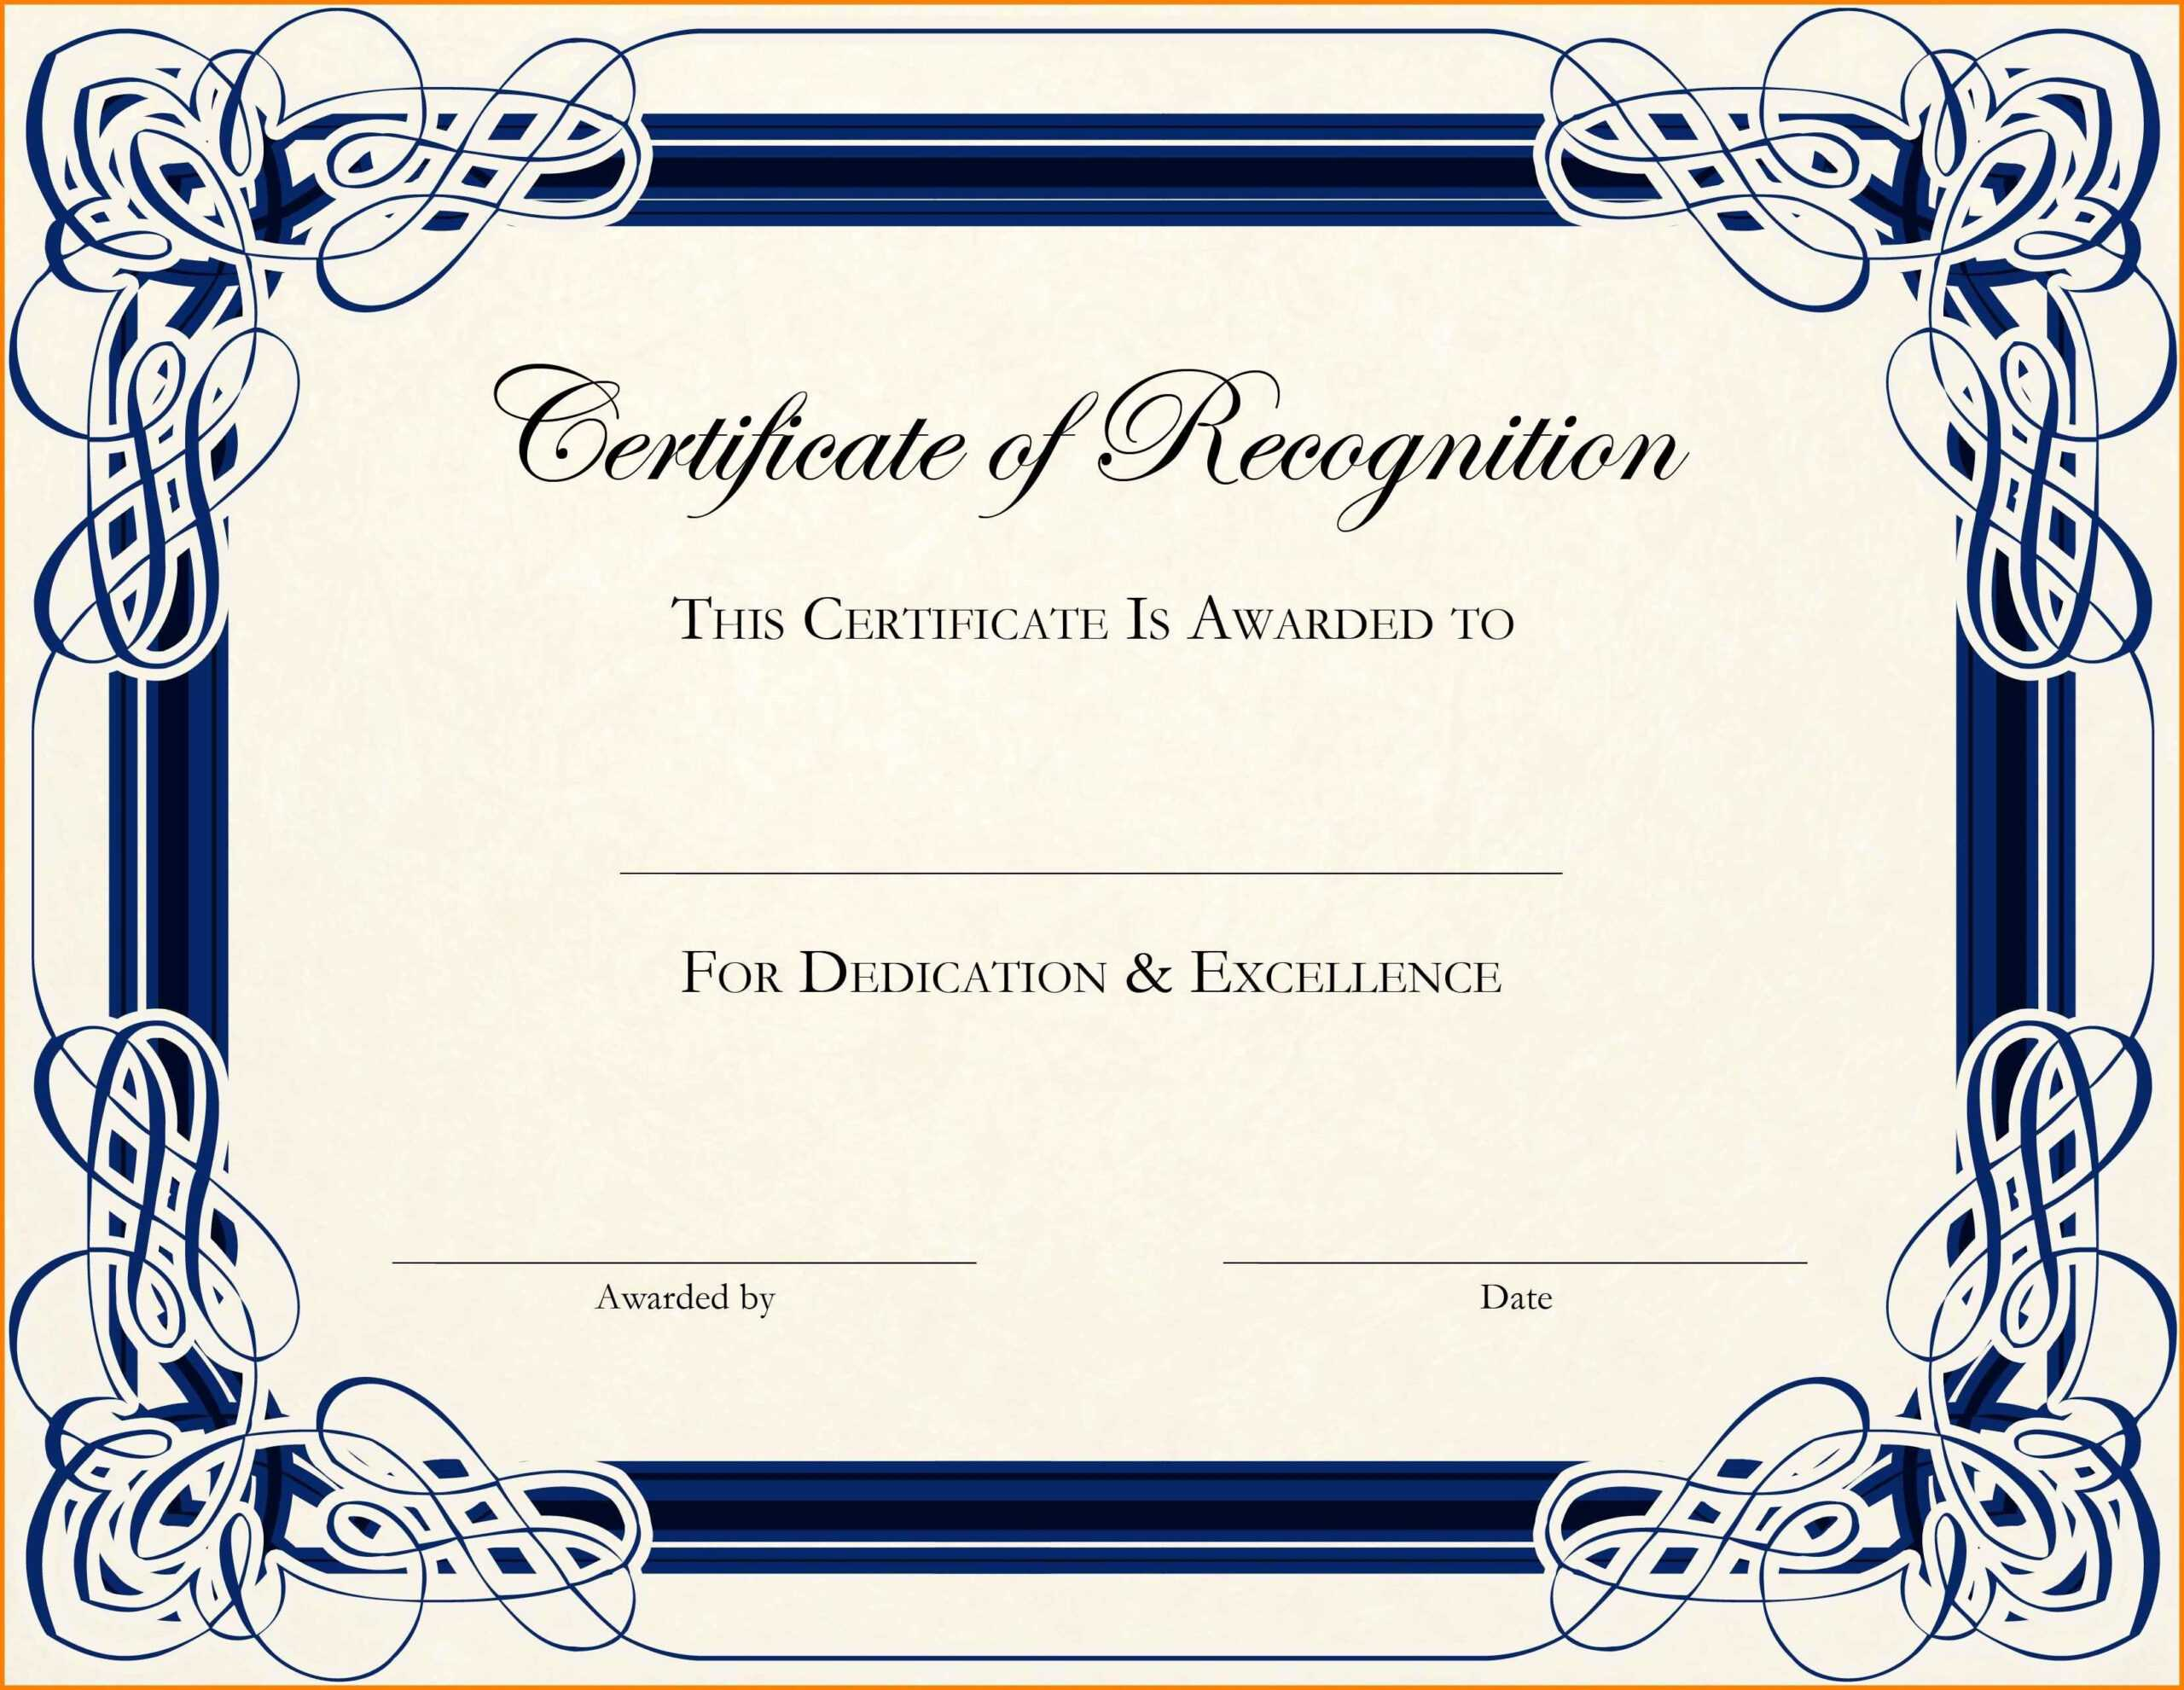 005 Template Ideas Terrific Basic Certificate Word Awful With Regard To Award Certificate Border Template